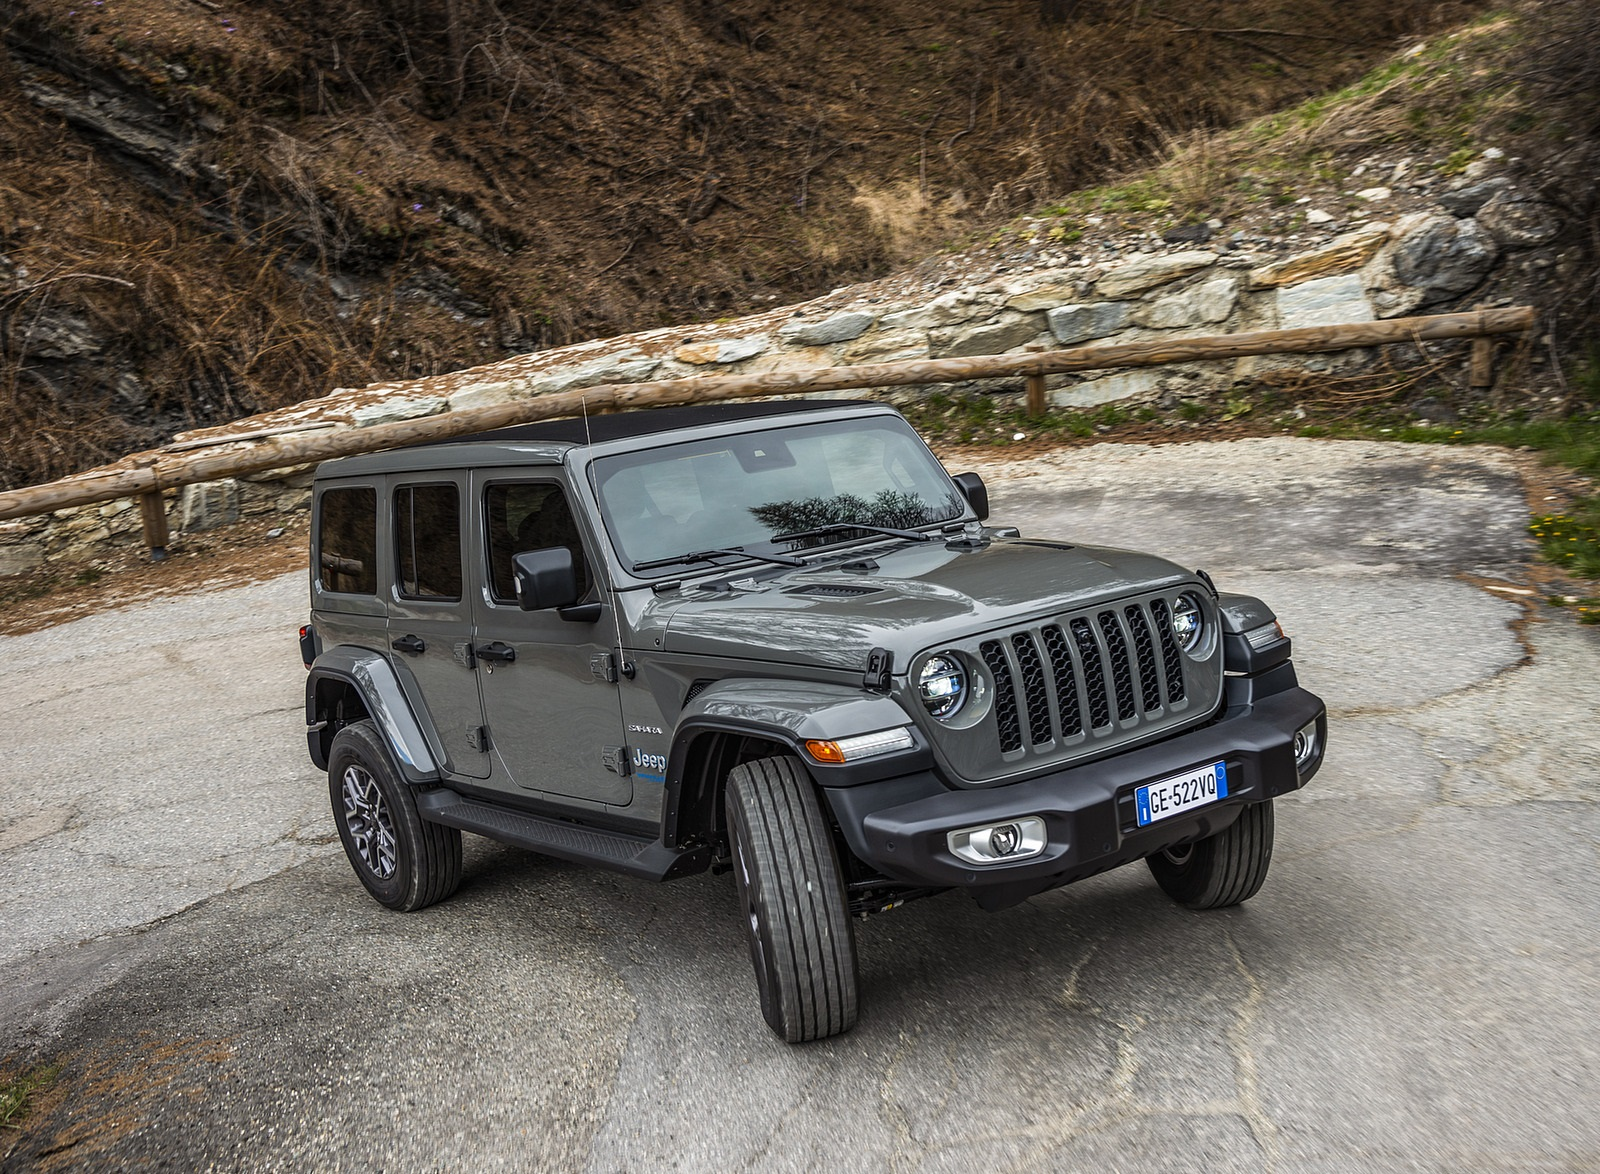 2021 Jeep Wrangler 4xe (Euro-Spec; Plug-In Hybrid) Front Three-Quarter Wallpapers (2)